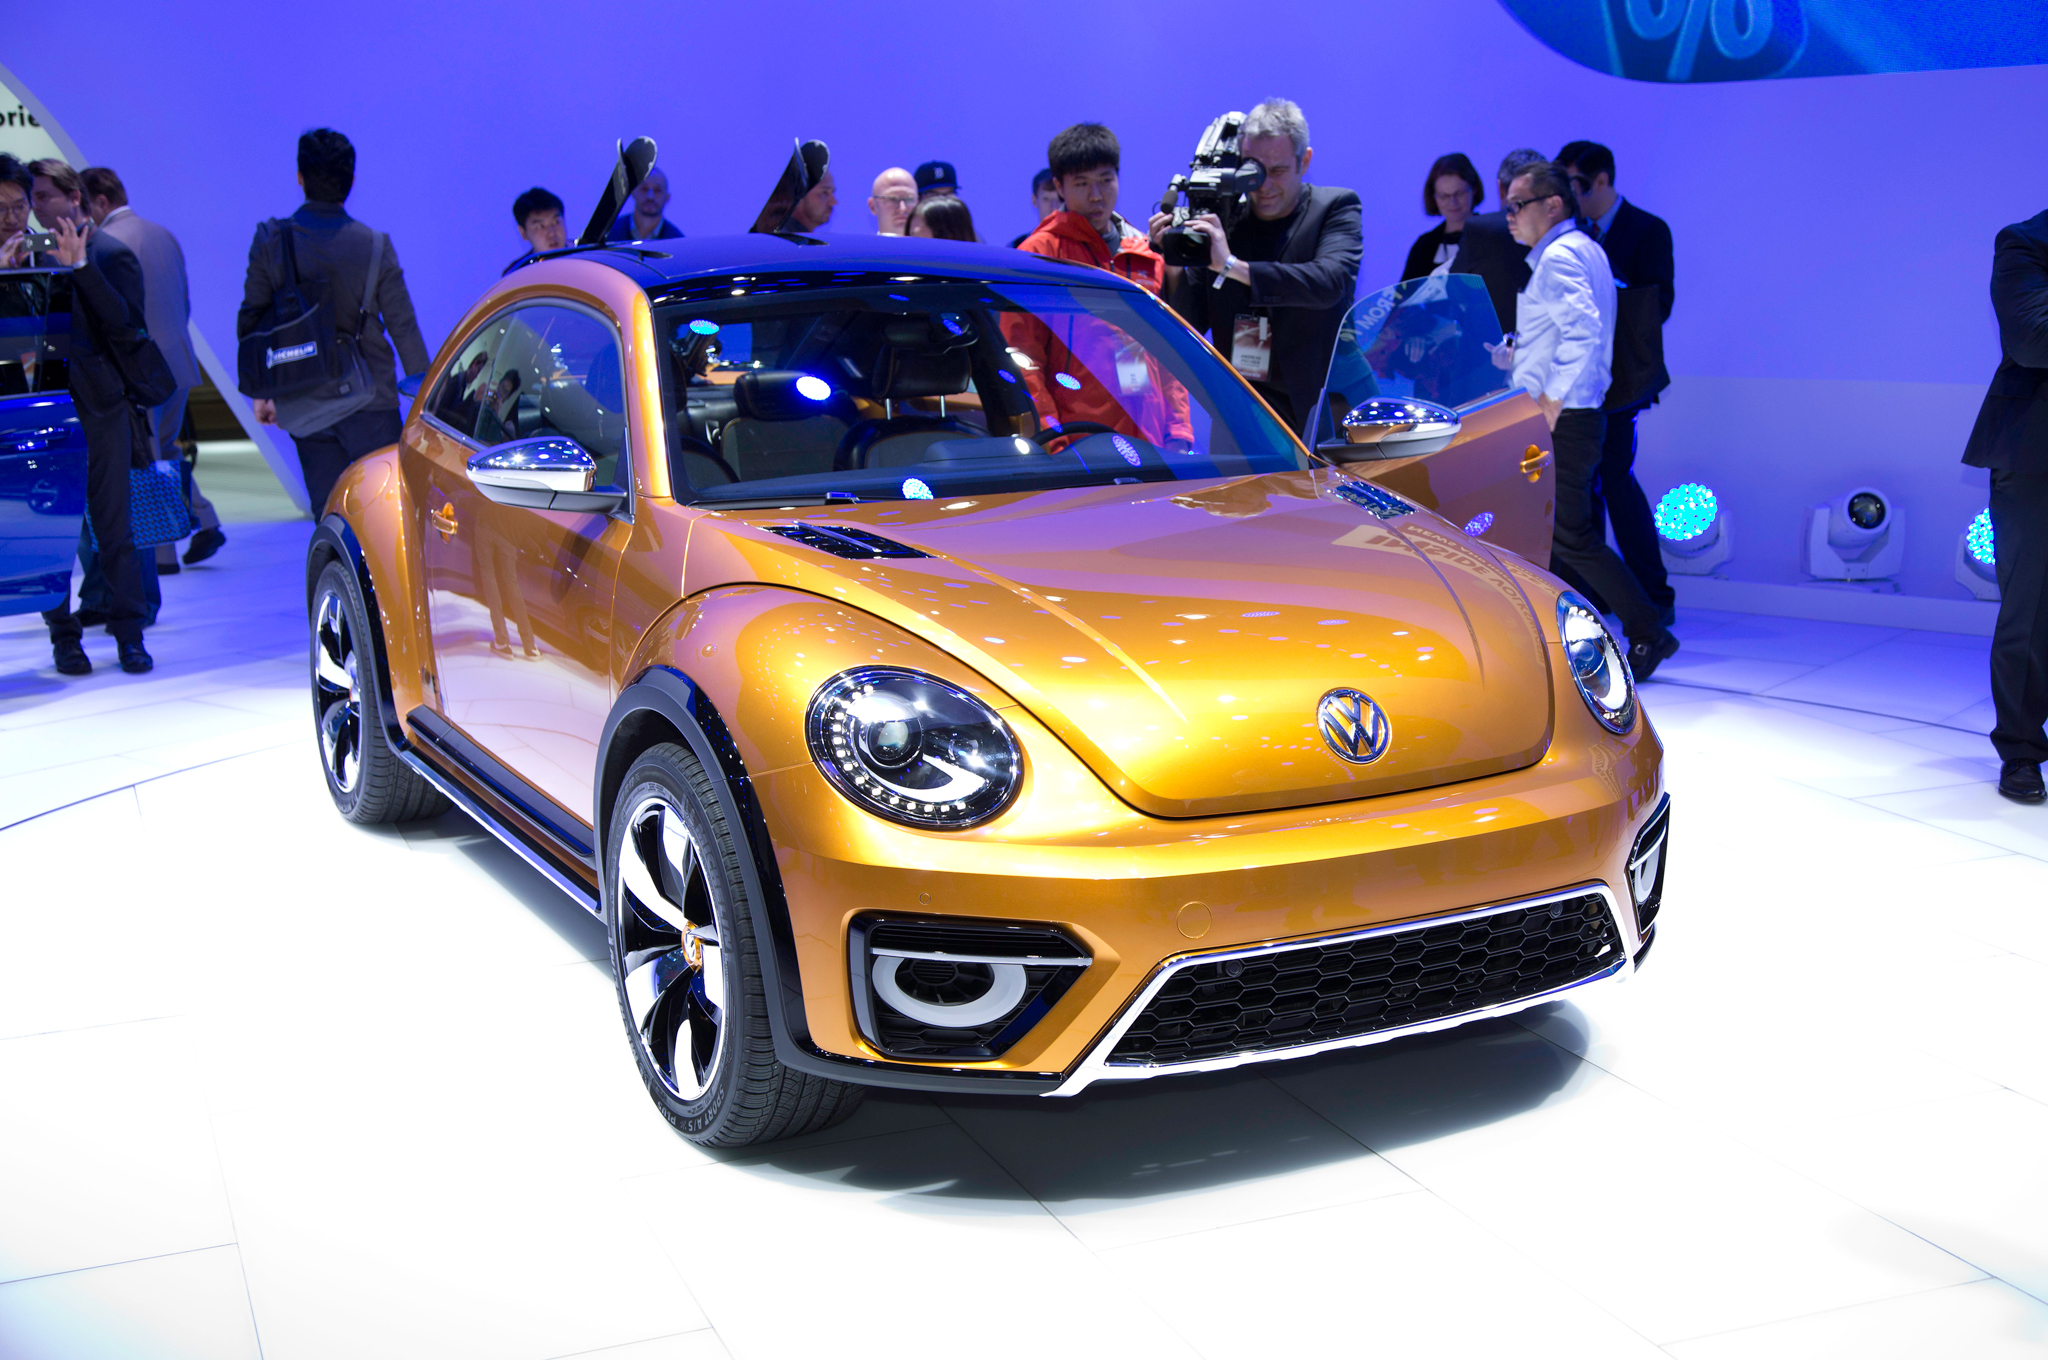 2019 Volkswagen Beetle Dune Concept photo - 4